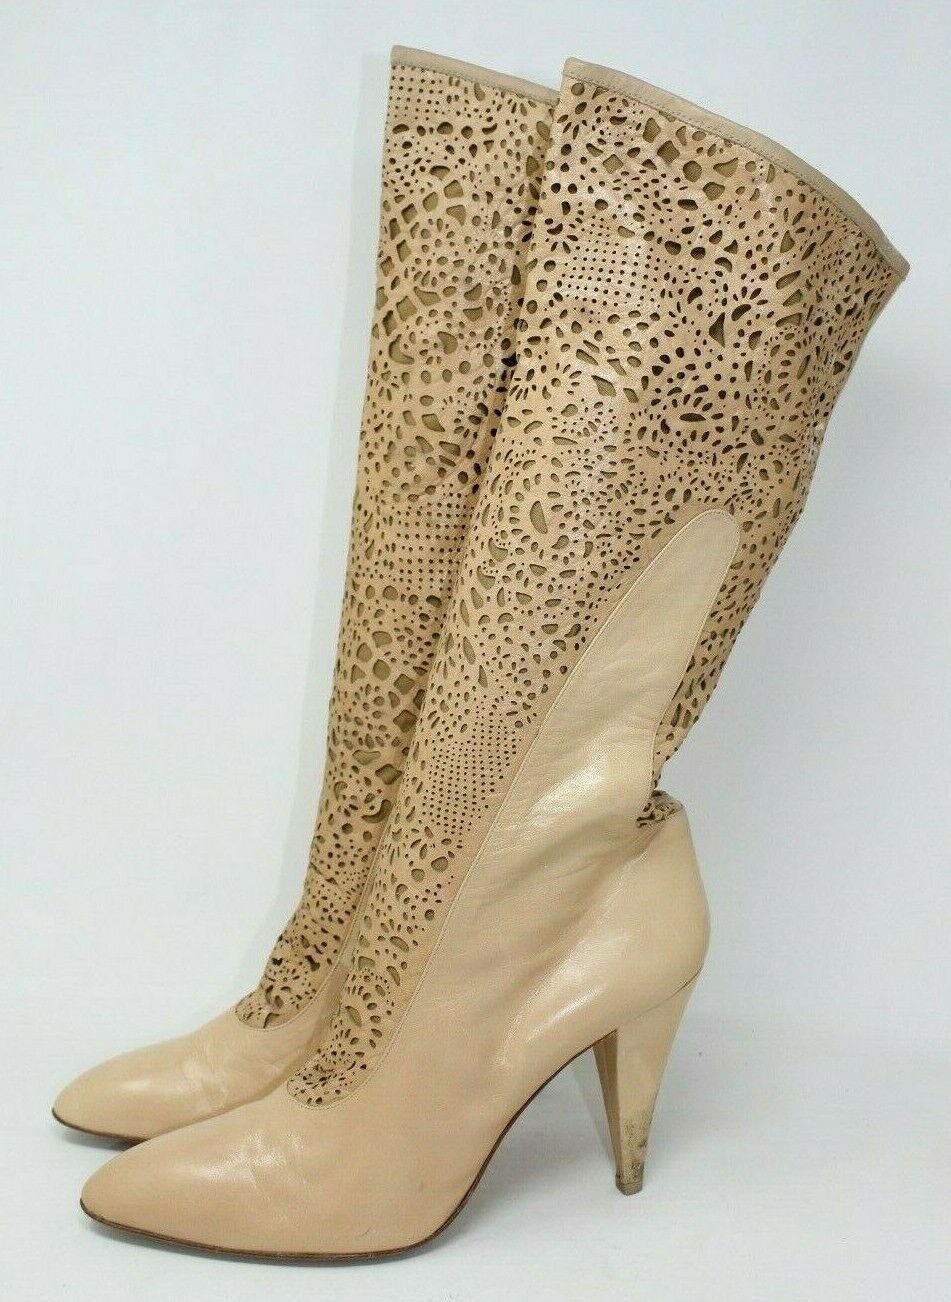 BCBGMAXAZRIA Leather Laser Cut Western Stiefel in Tan - 11 US